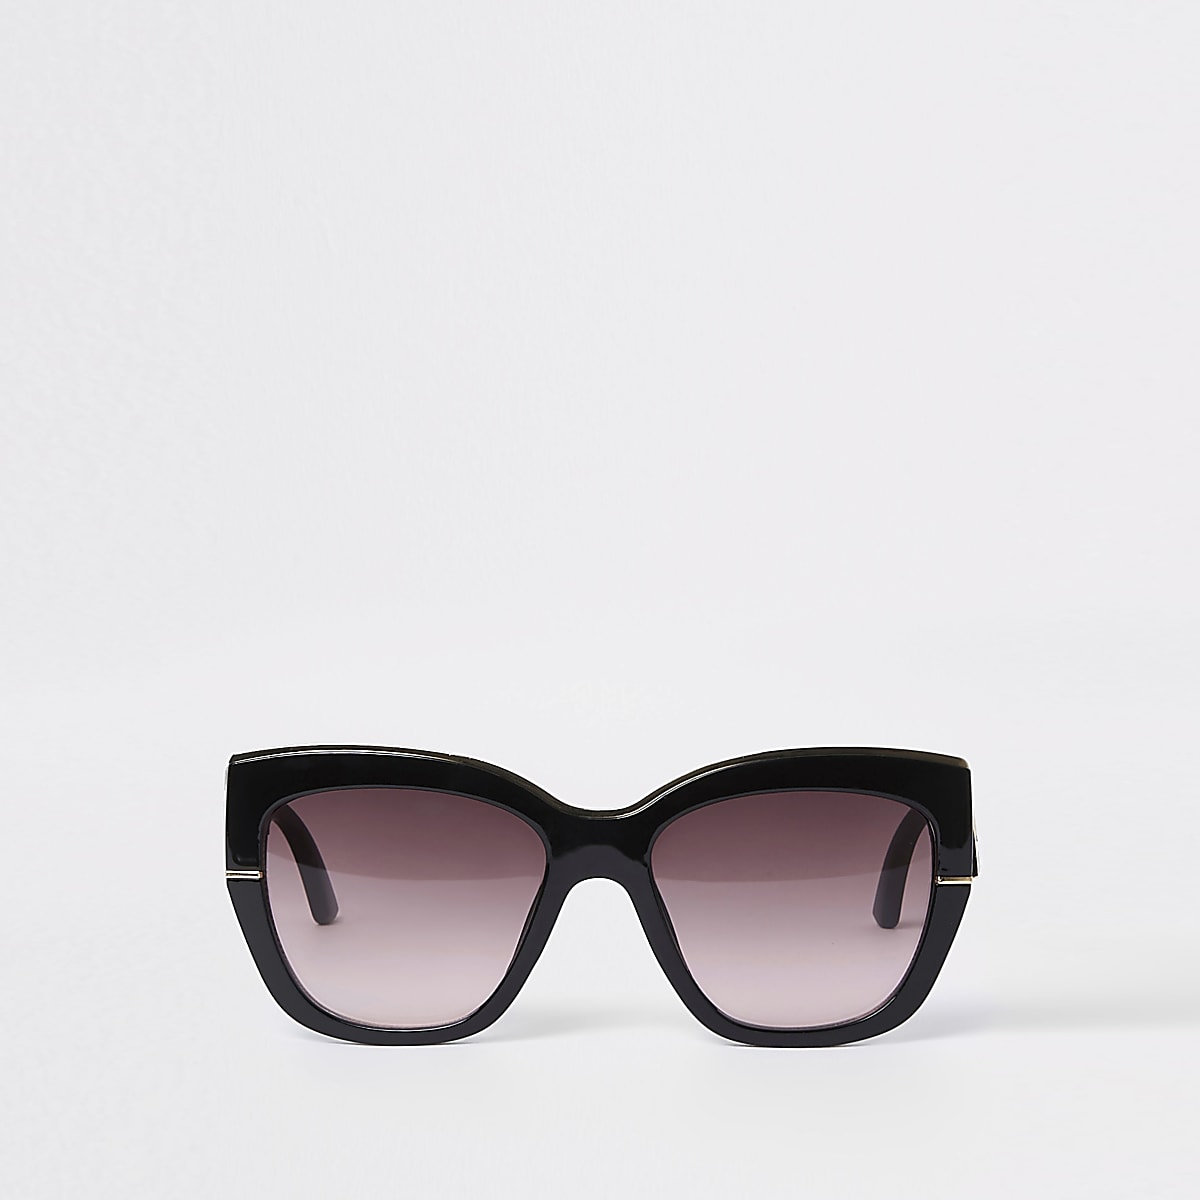 Black gold tone trim glam sunglasses